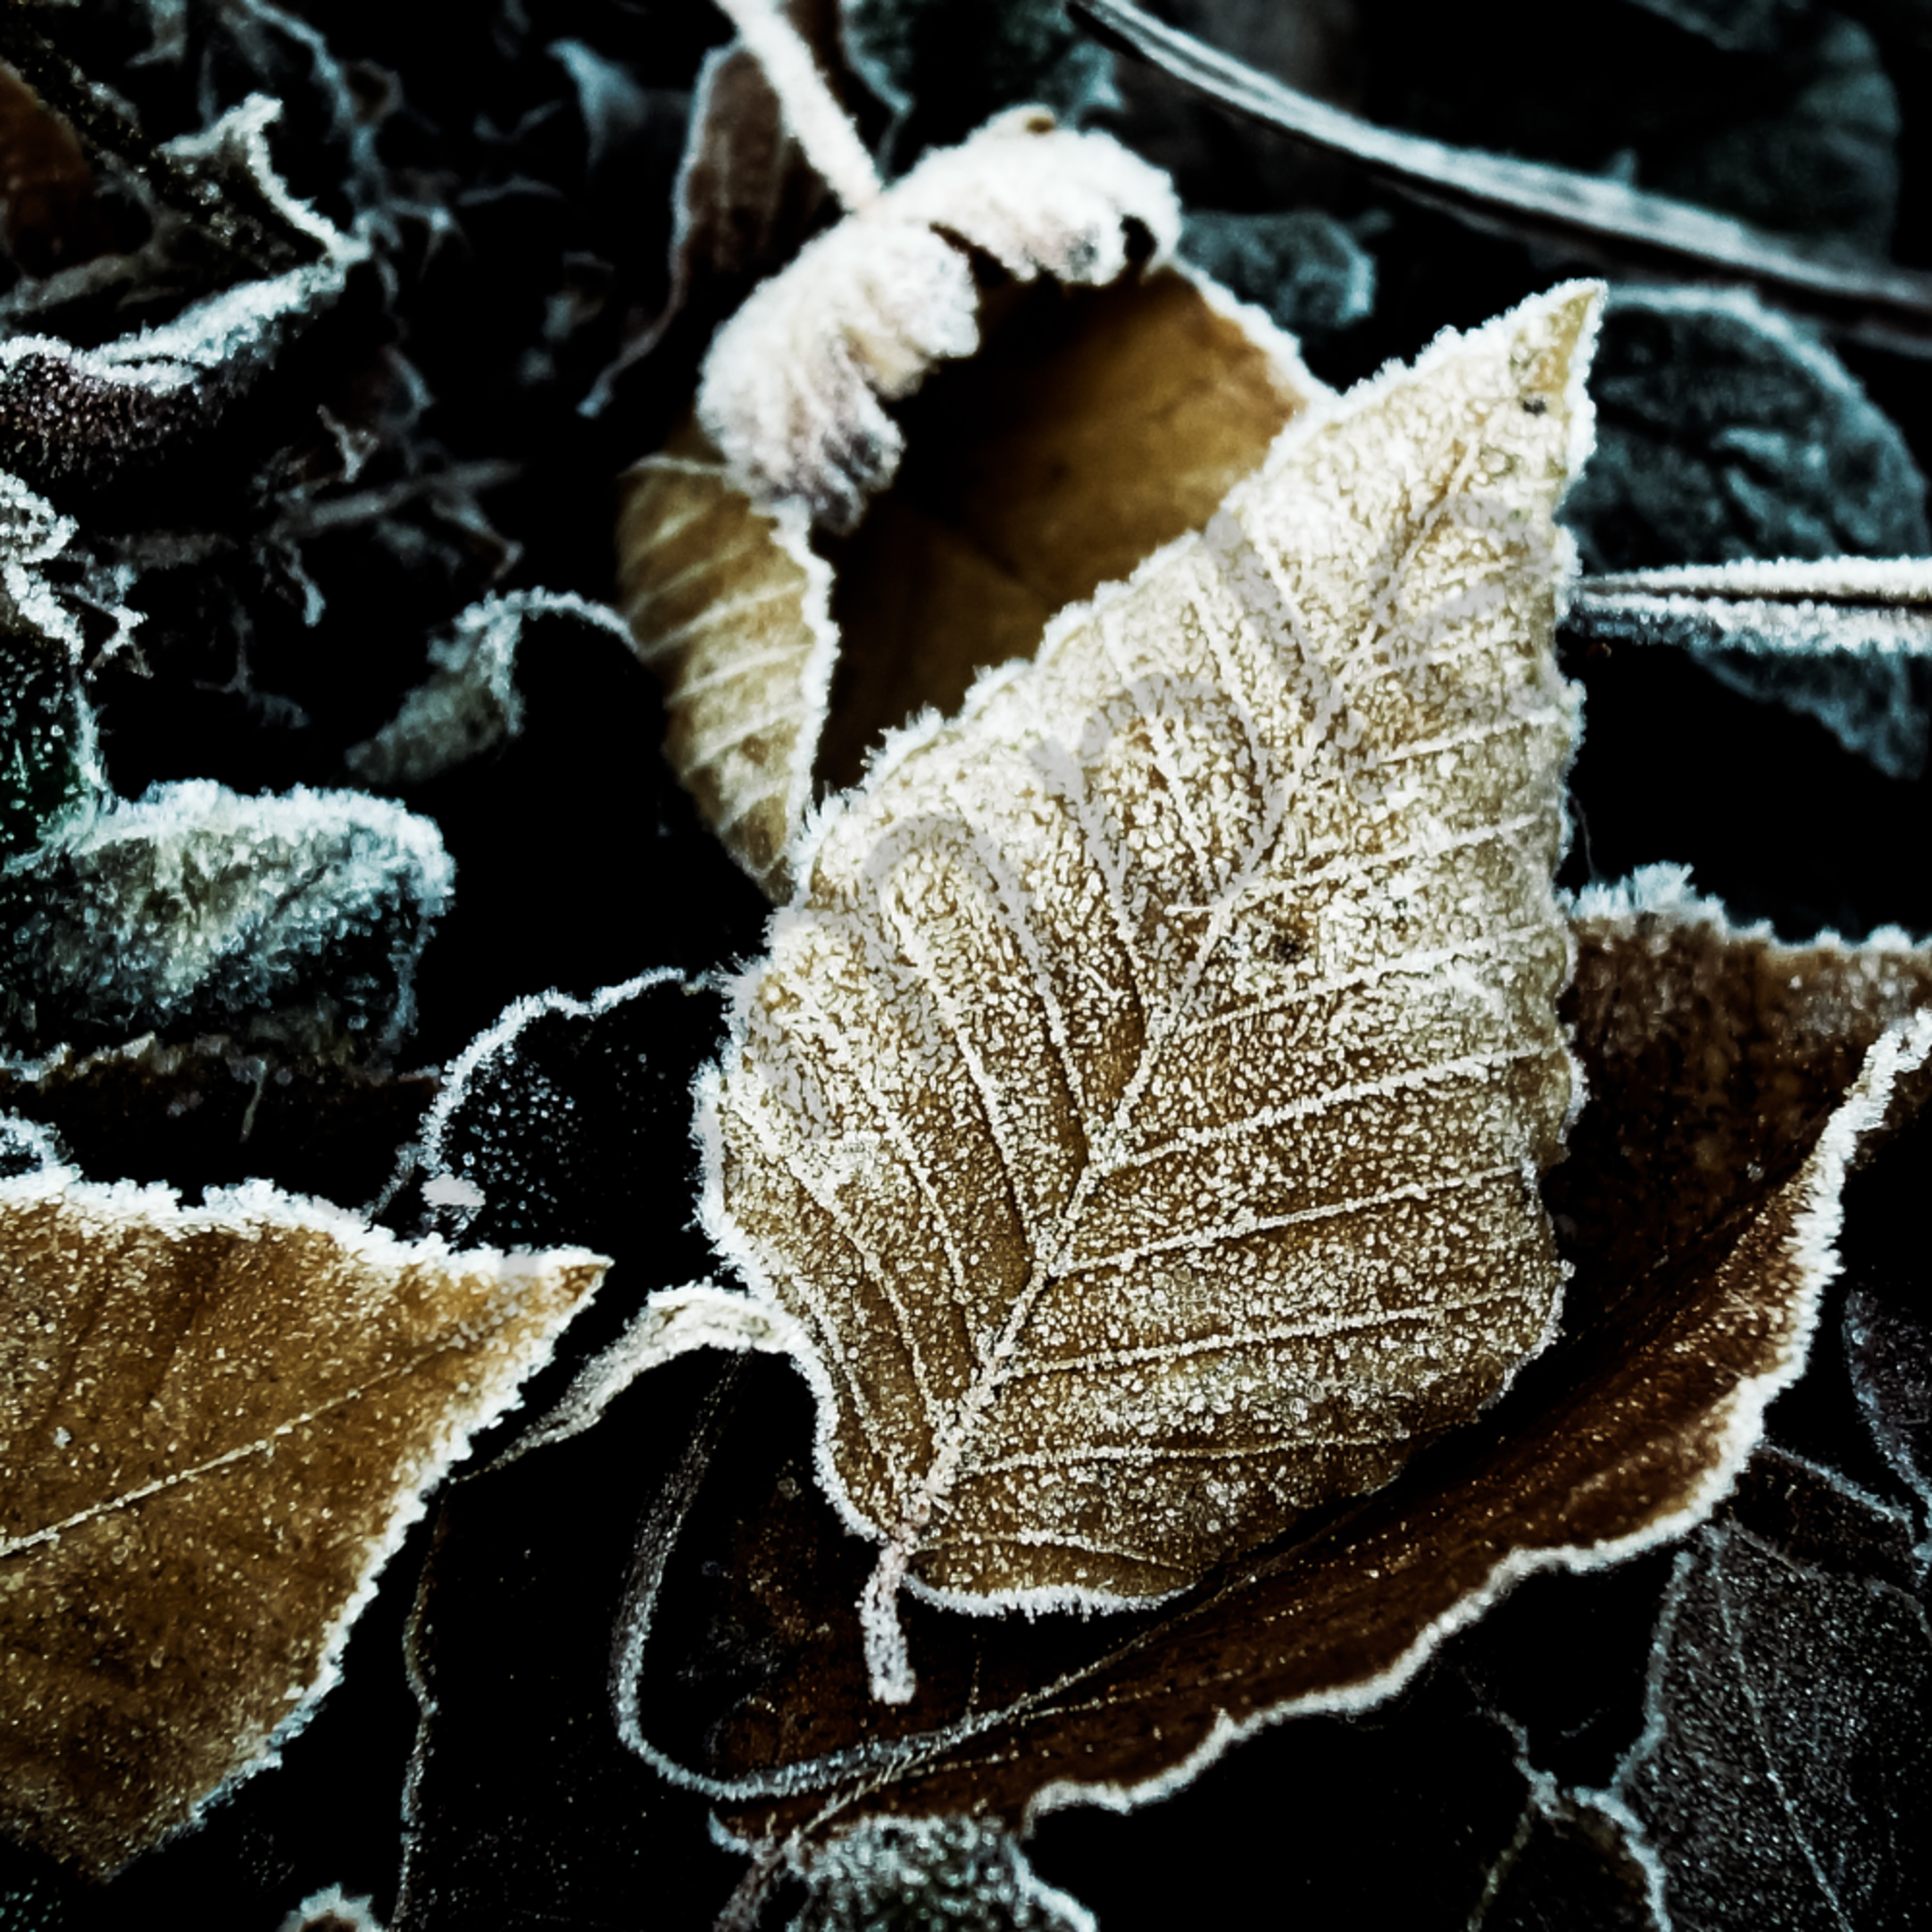 Frosted beech leaves ndmuyk